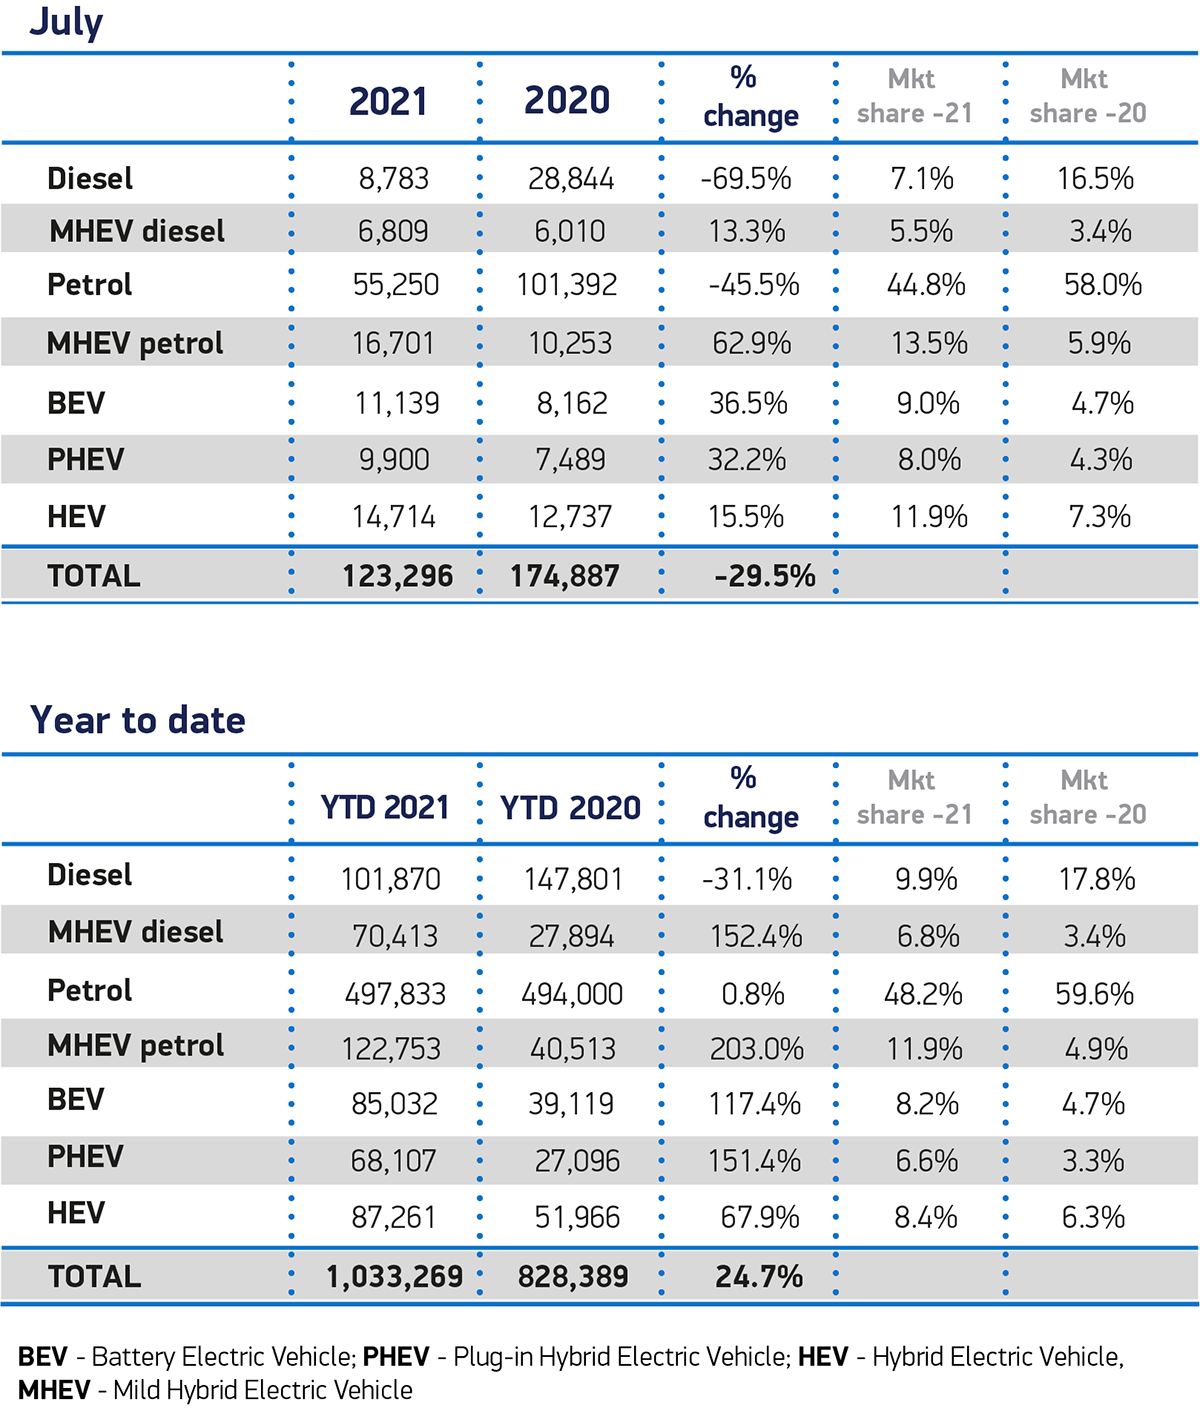 July-Fuel-2021-and-YTD-cars-SMMT. Image courtesy of SMMT